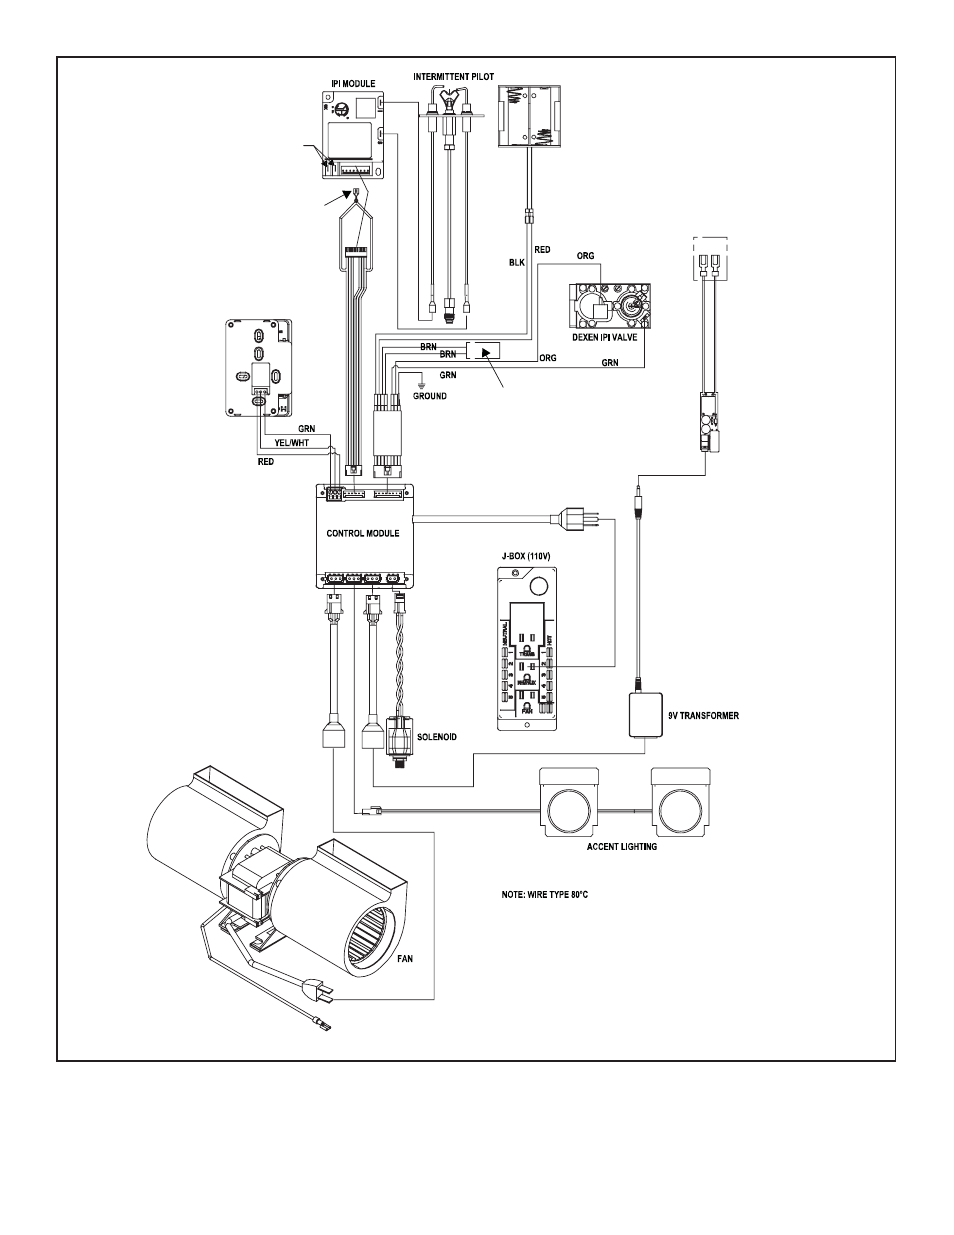 D. electrical service and repair   Heat & Glo Fireplace 6000GLX-IPILP-S/-R  User Manual   Page 48 / 72   Original modeManuals Directory